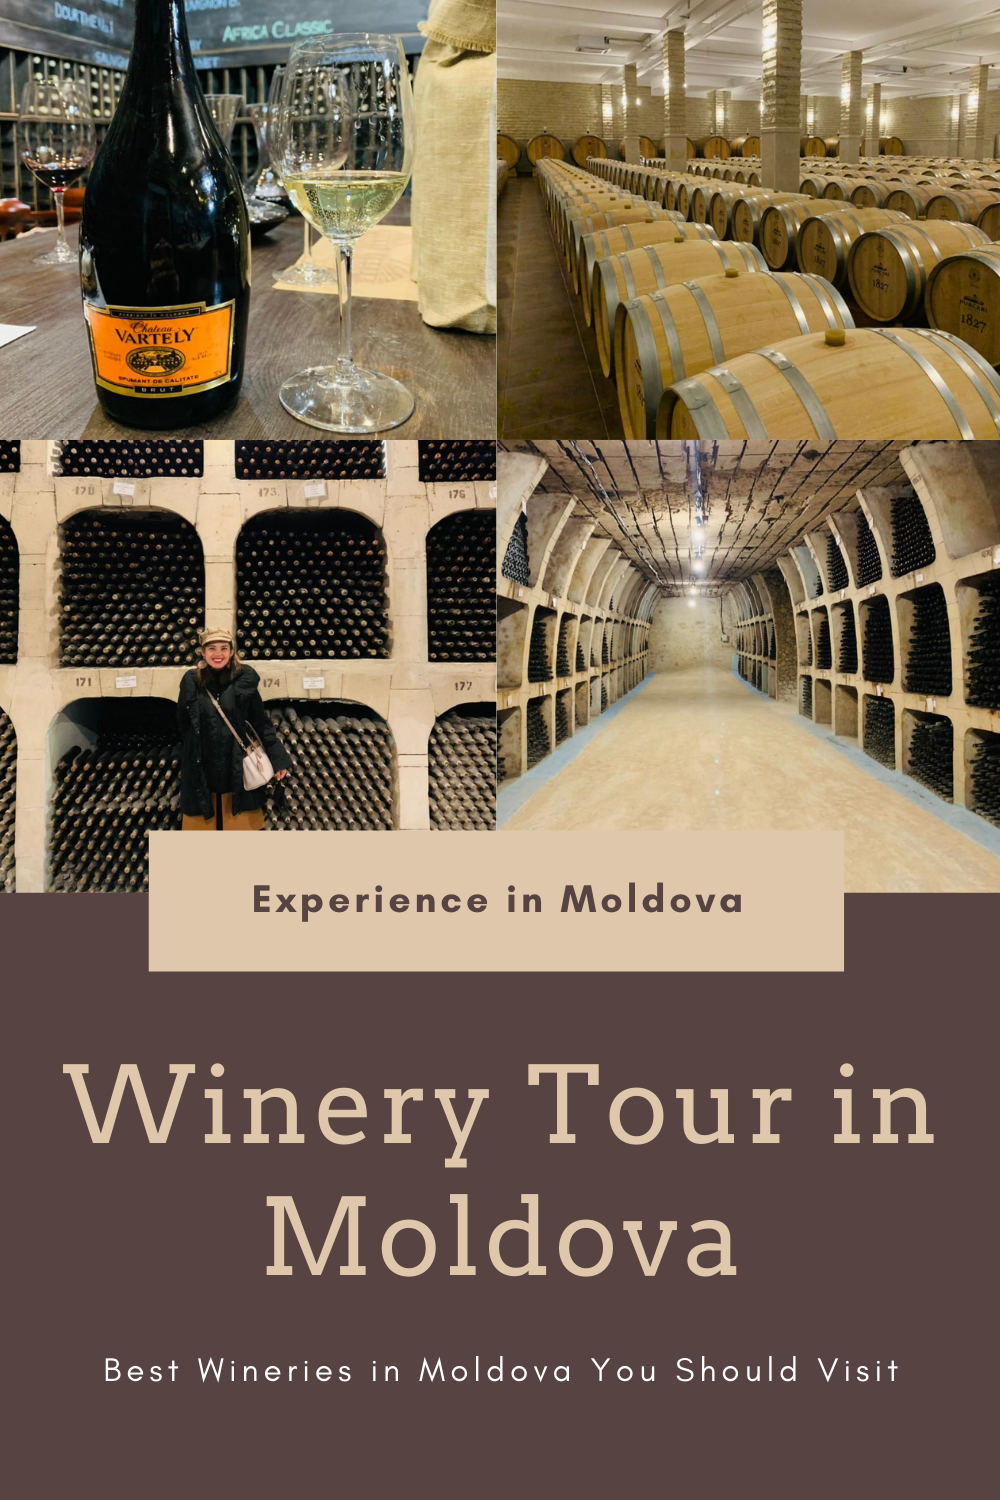 Our Winery Tour Experience in Moldova - Best Wineries in Moldova You Should Visit